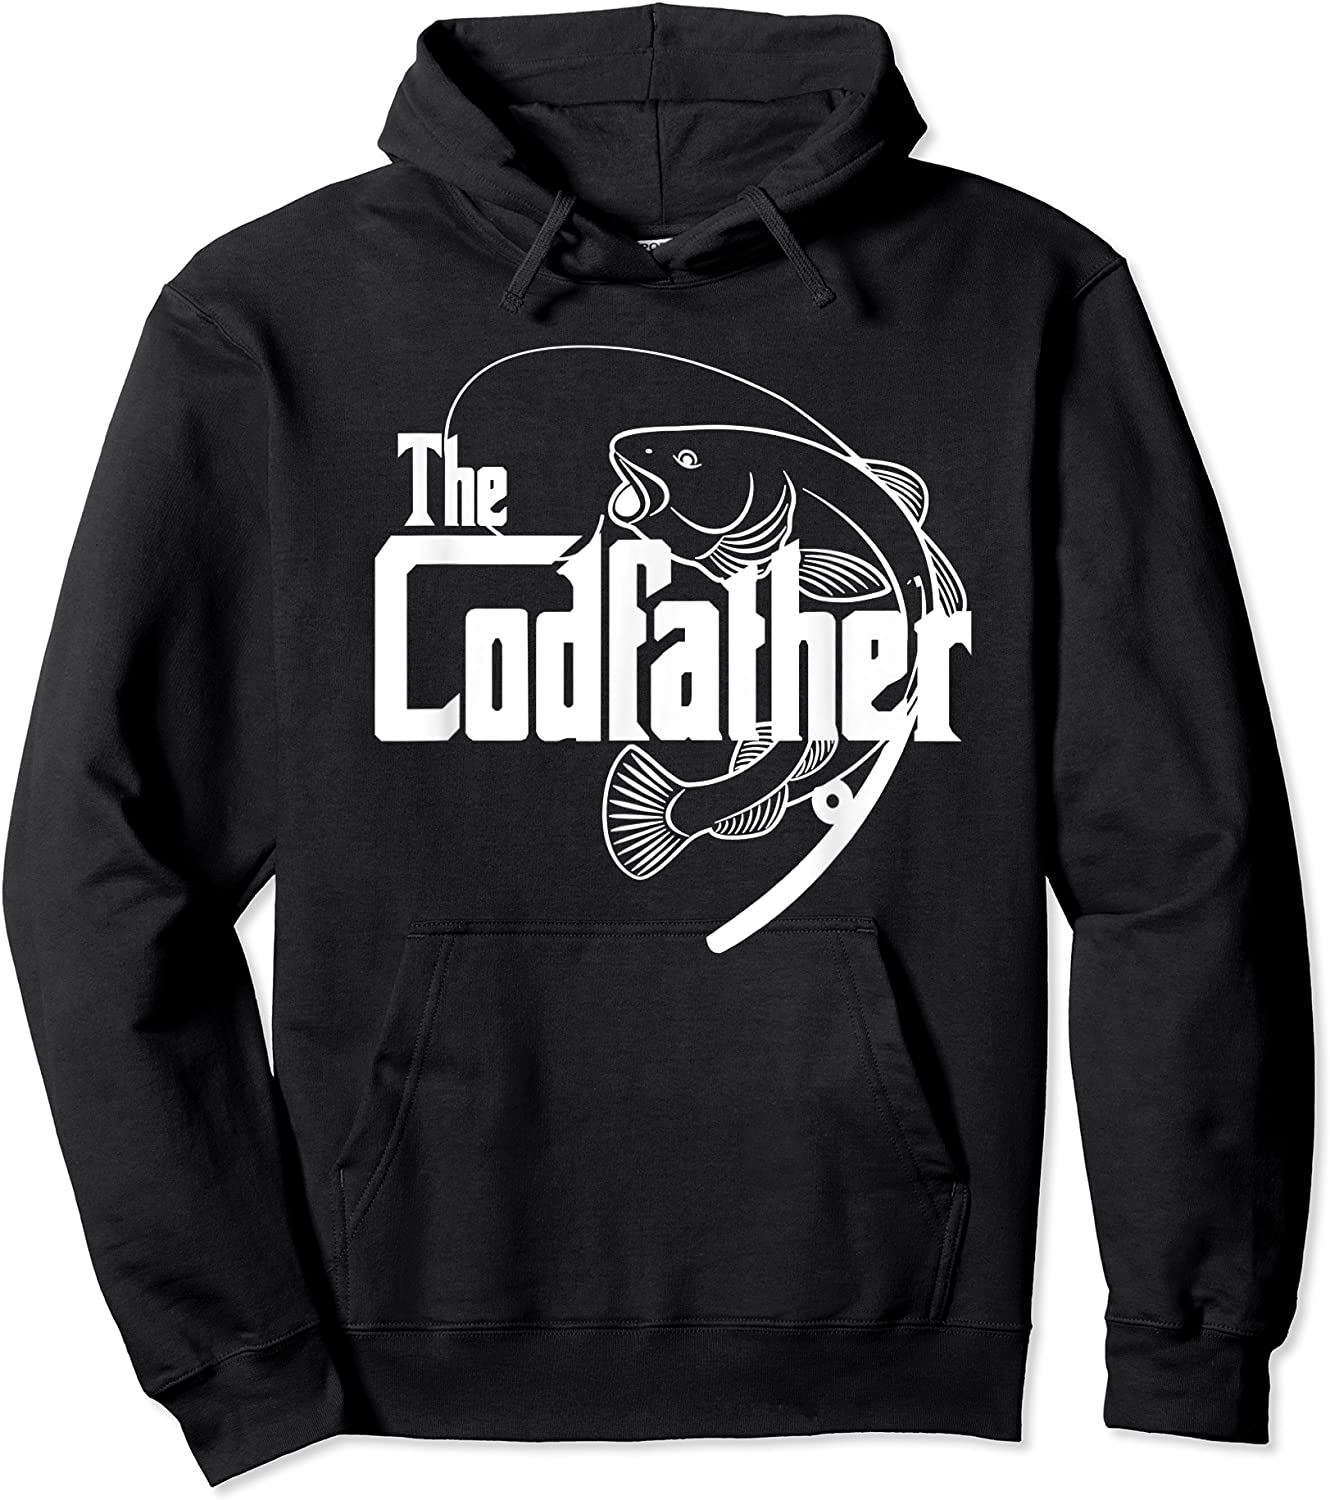 S Codfather Cod Fishing Fisherman Angler Novelty Humor Gifts T-shirt Unisex Pullover Hoodie